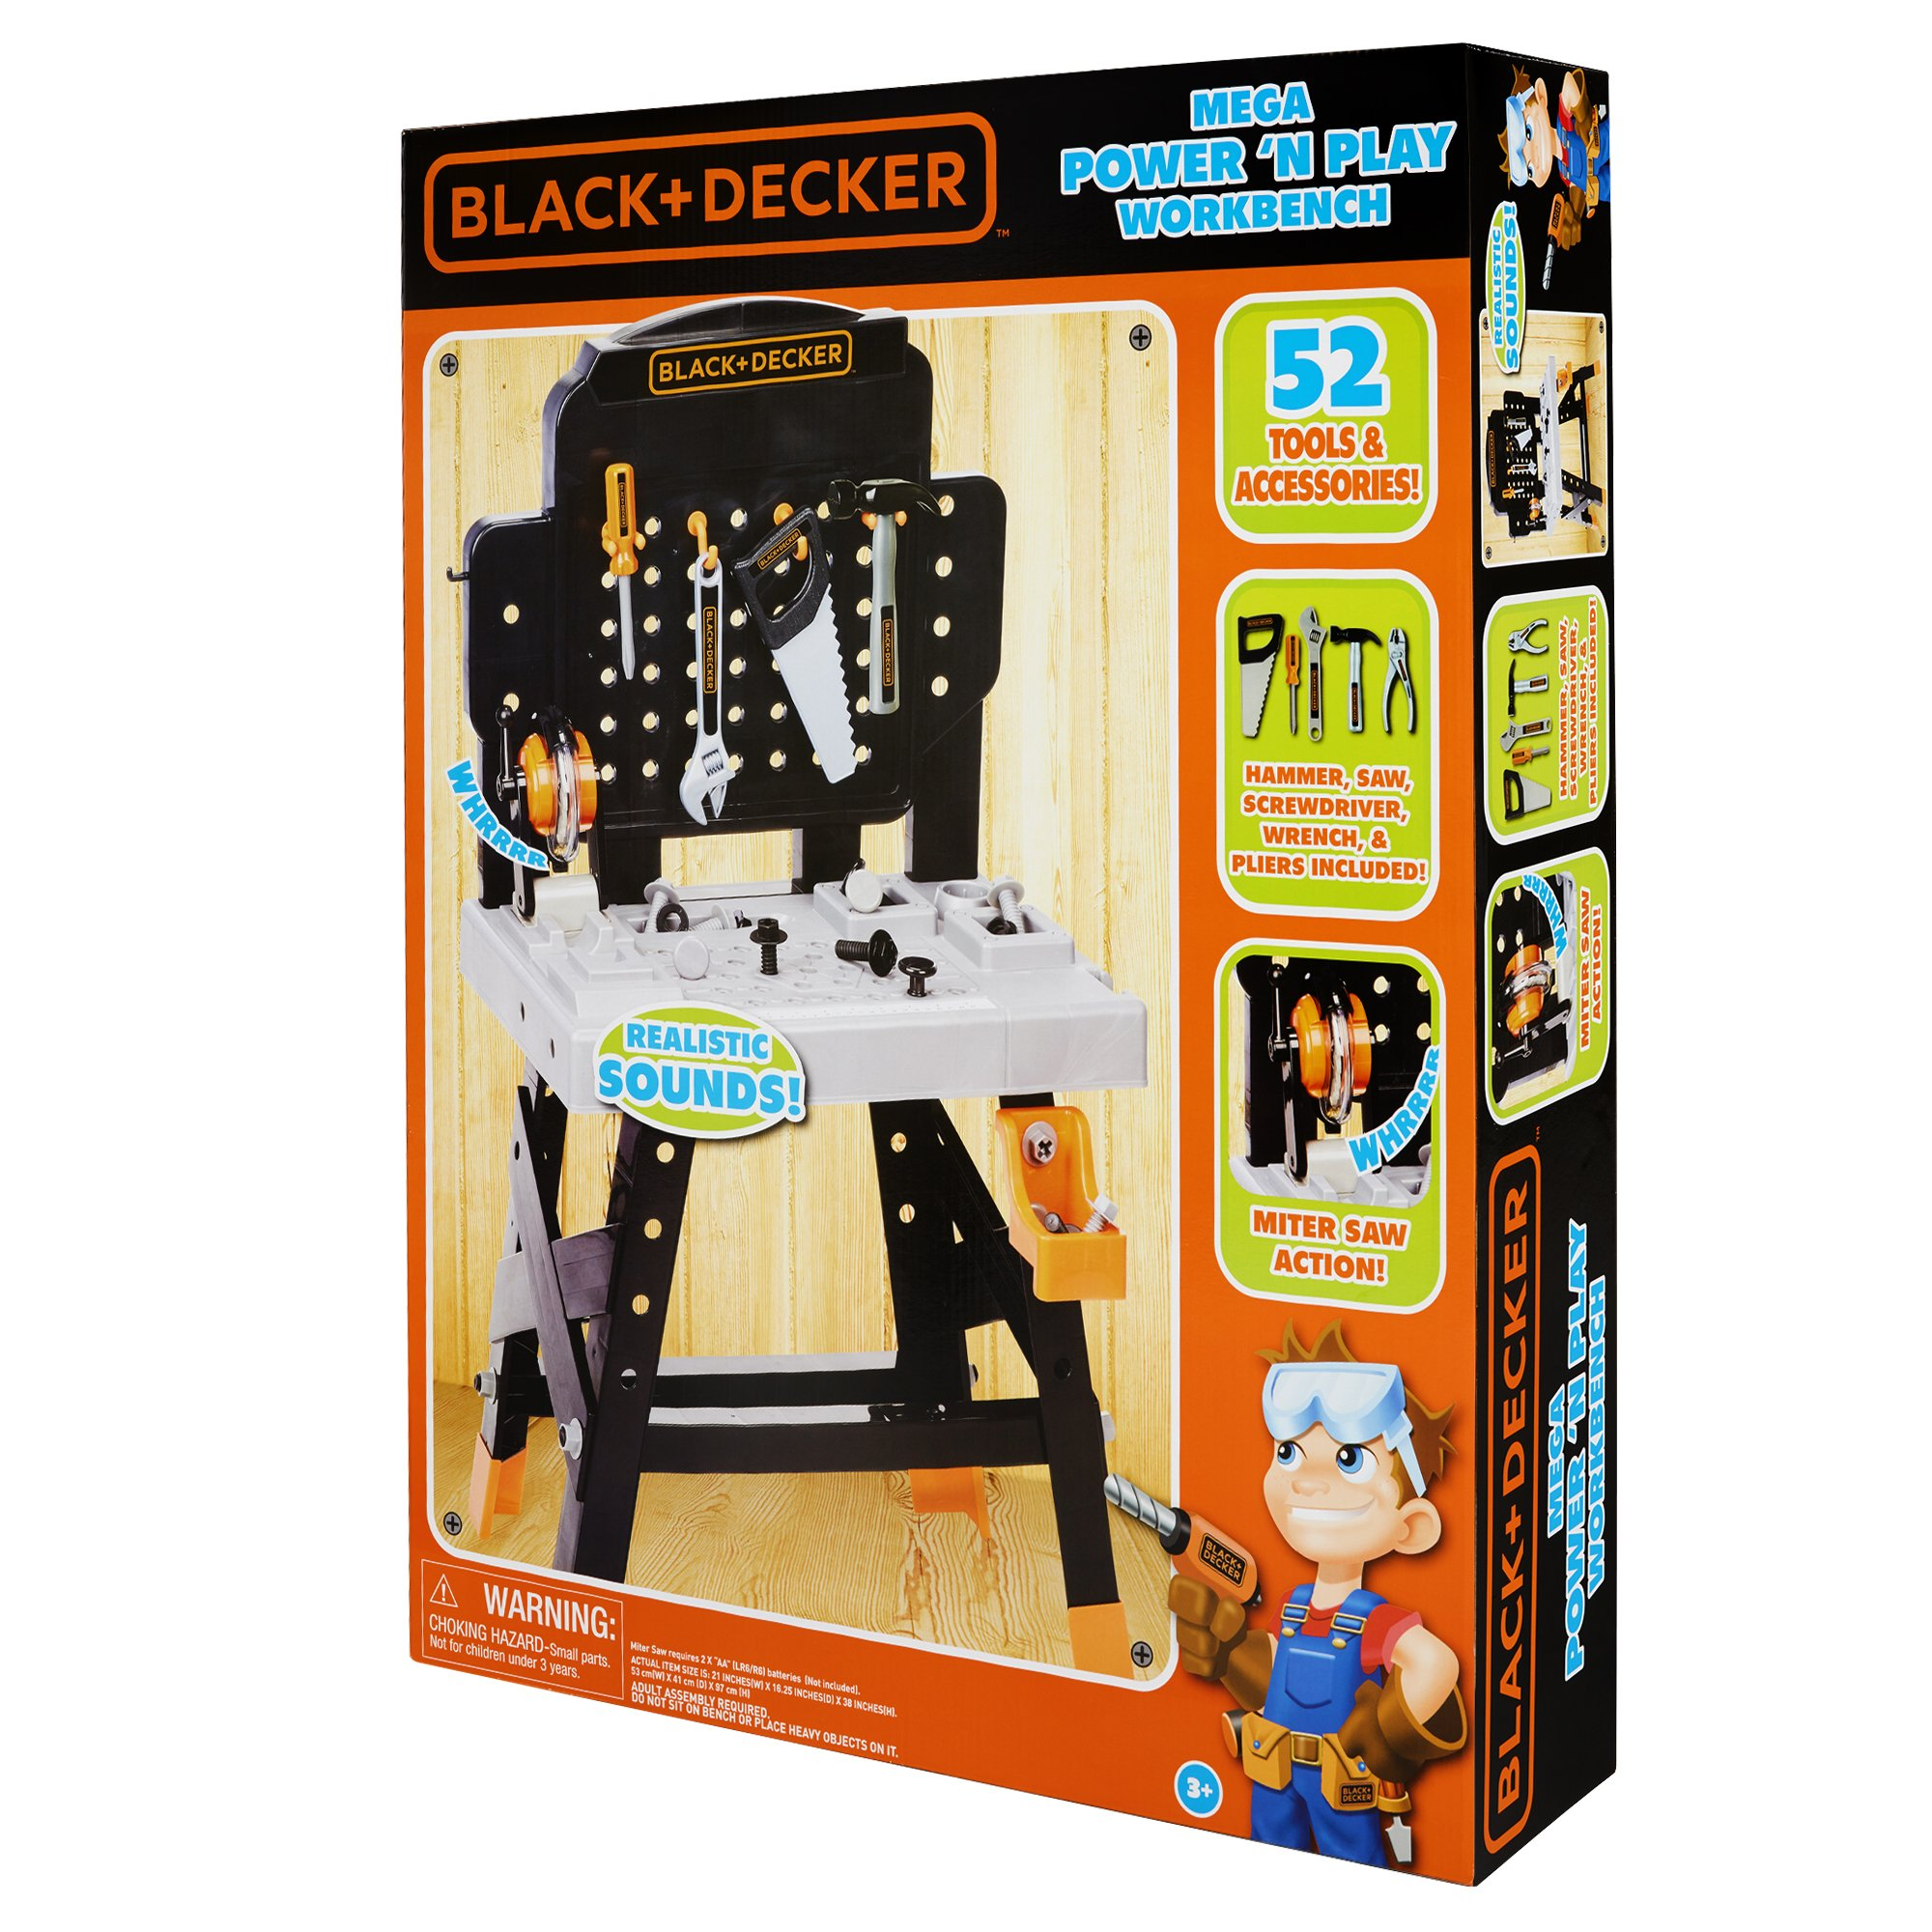 BLACK+DECKER 71382 Jr. Mega Power N' Play Workbench with Realistic Sounds! - 52 Tools & Accessories by BLACK+DECKER (Image #9)